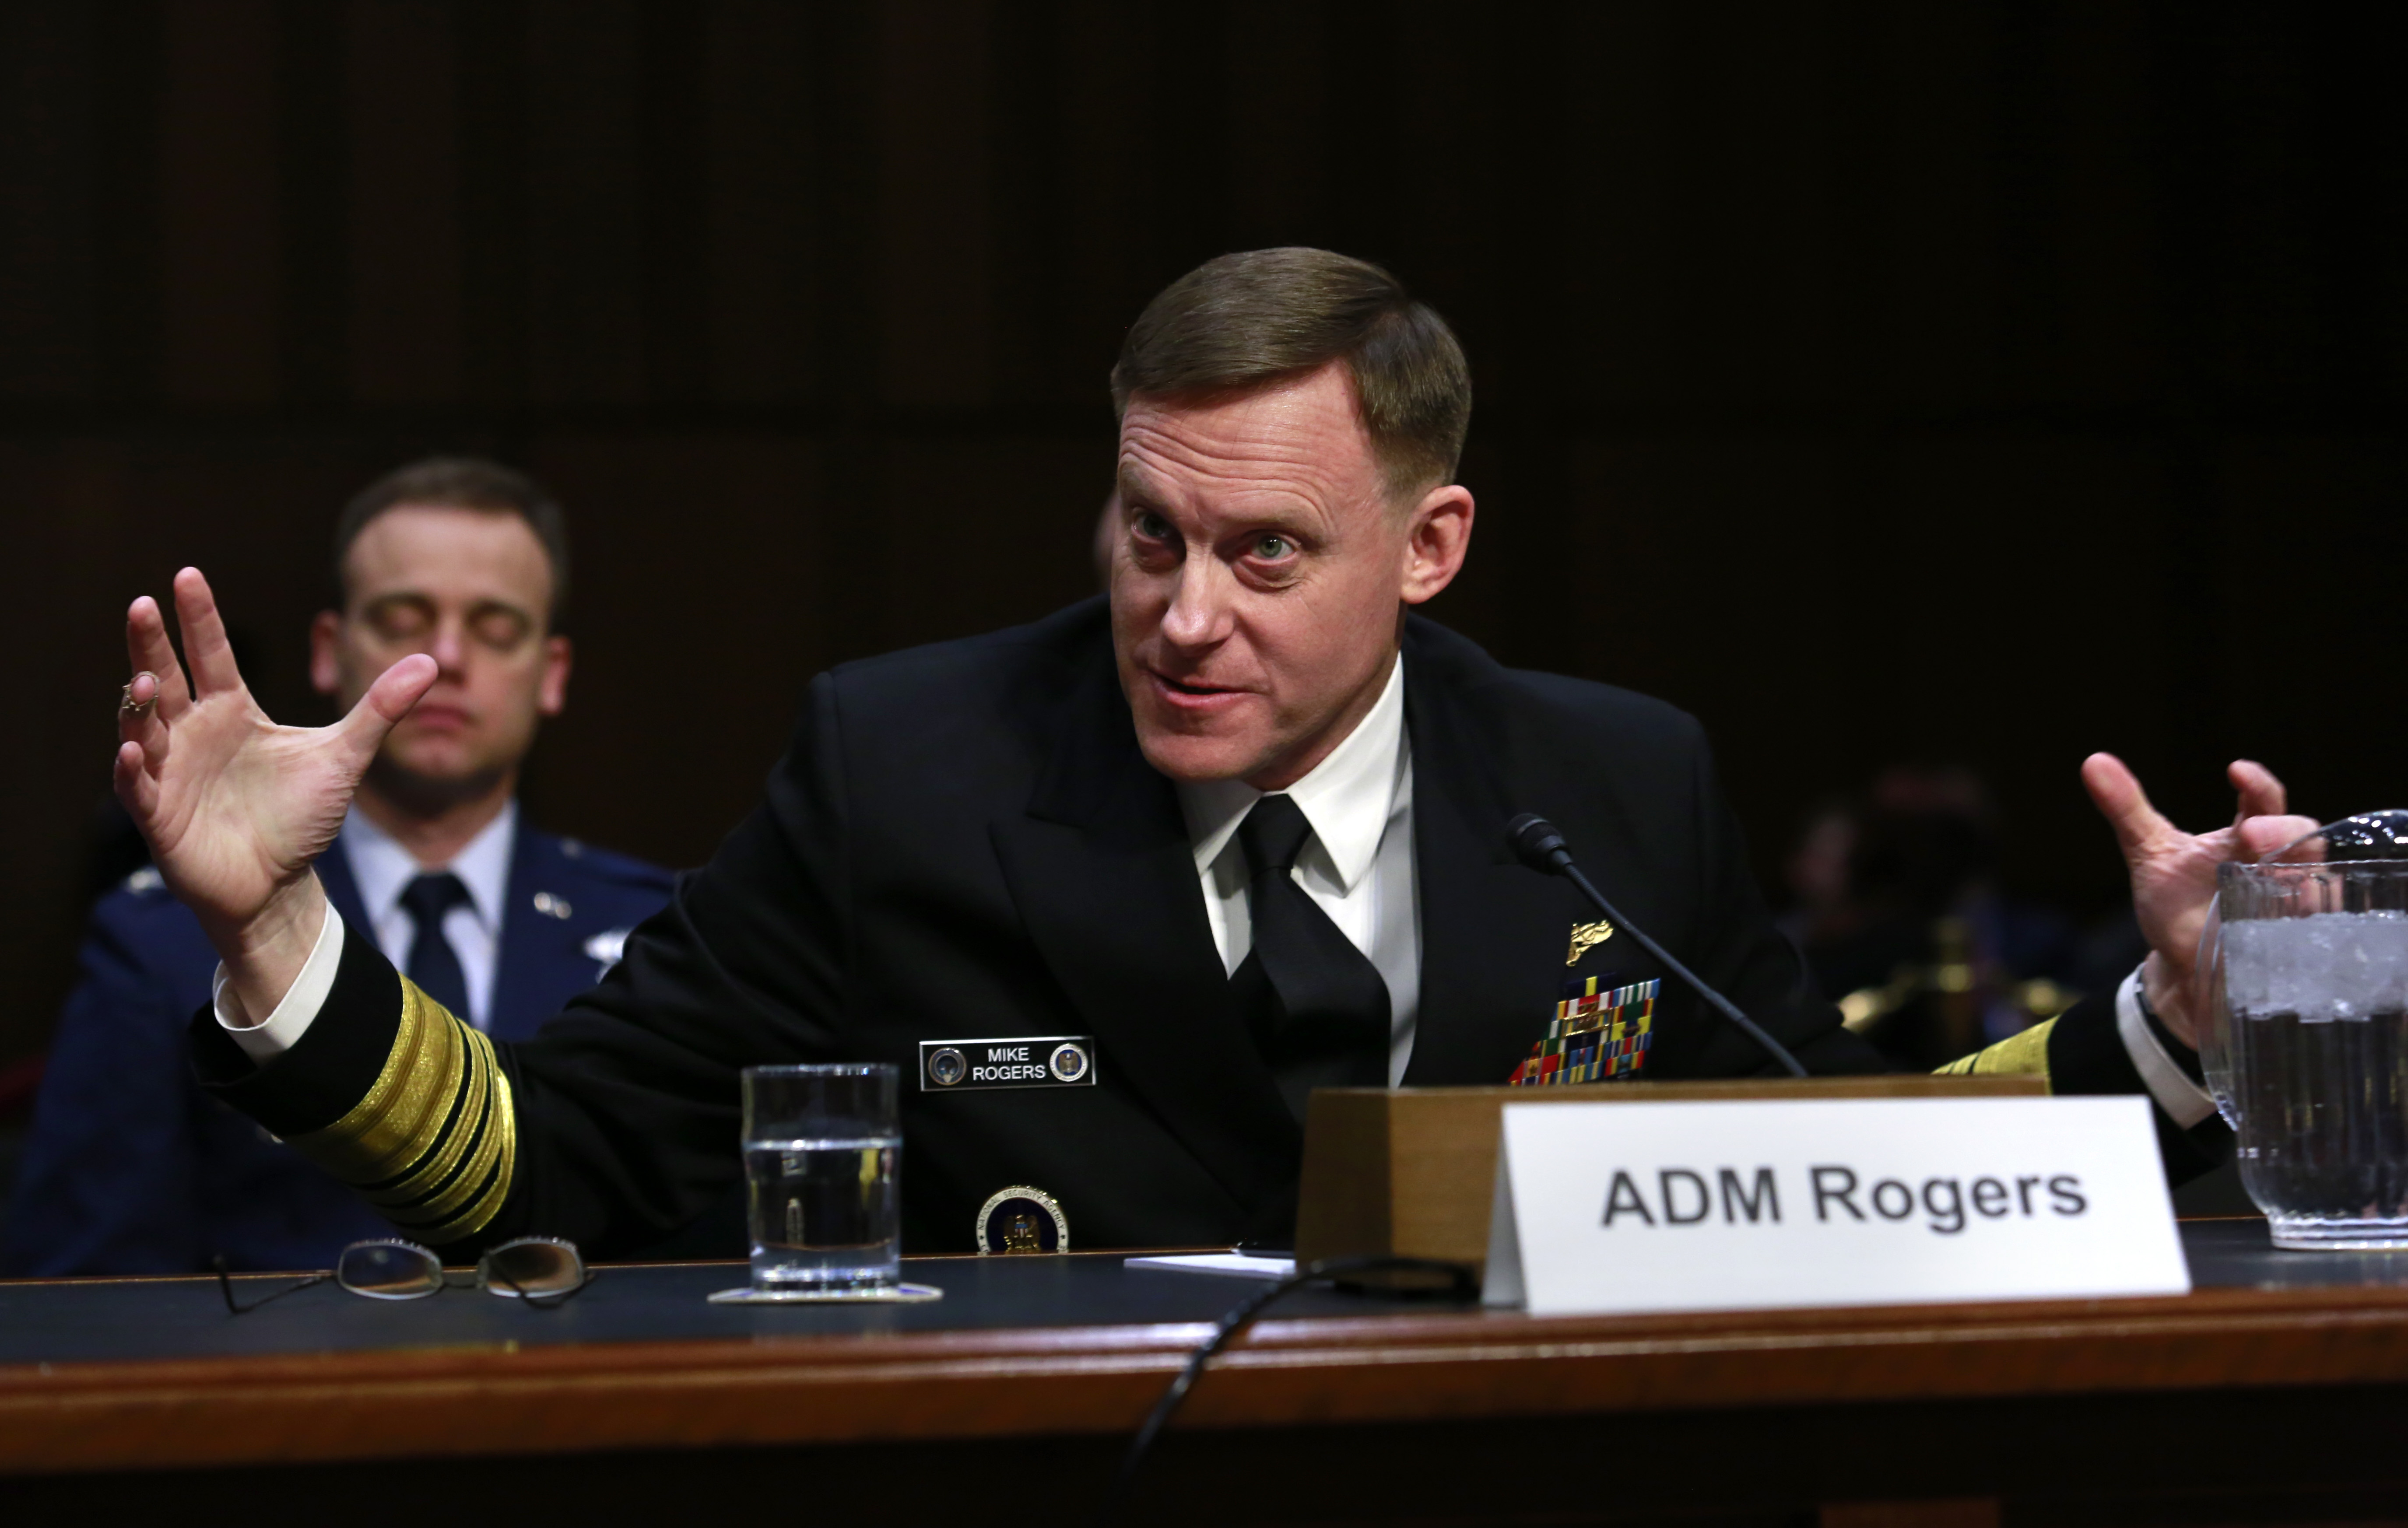 Navy Adm. Michael Rogers, commander of the U.S. Cyber Command, testifies before a Senate Armed Services Committee hearing where he discussed challenges to integrating the electronic warfare, cyber and the information dynamic, among other topics. (YURI GRIPAS/AFP/Getty Images)